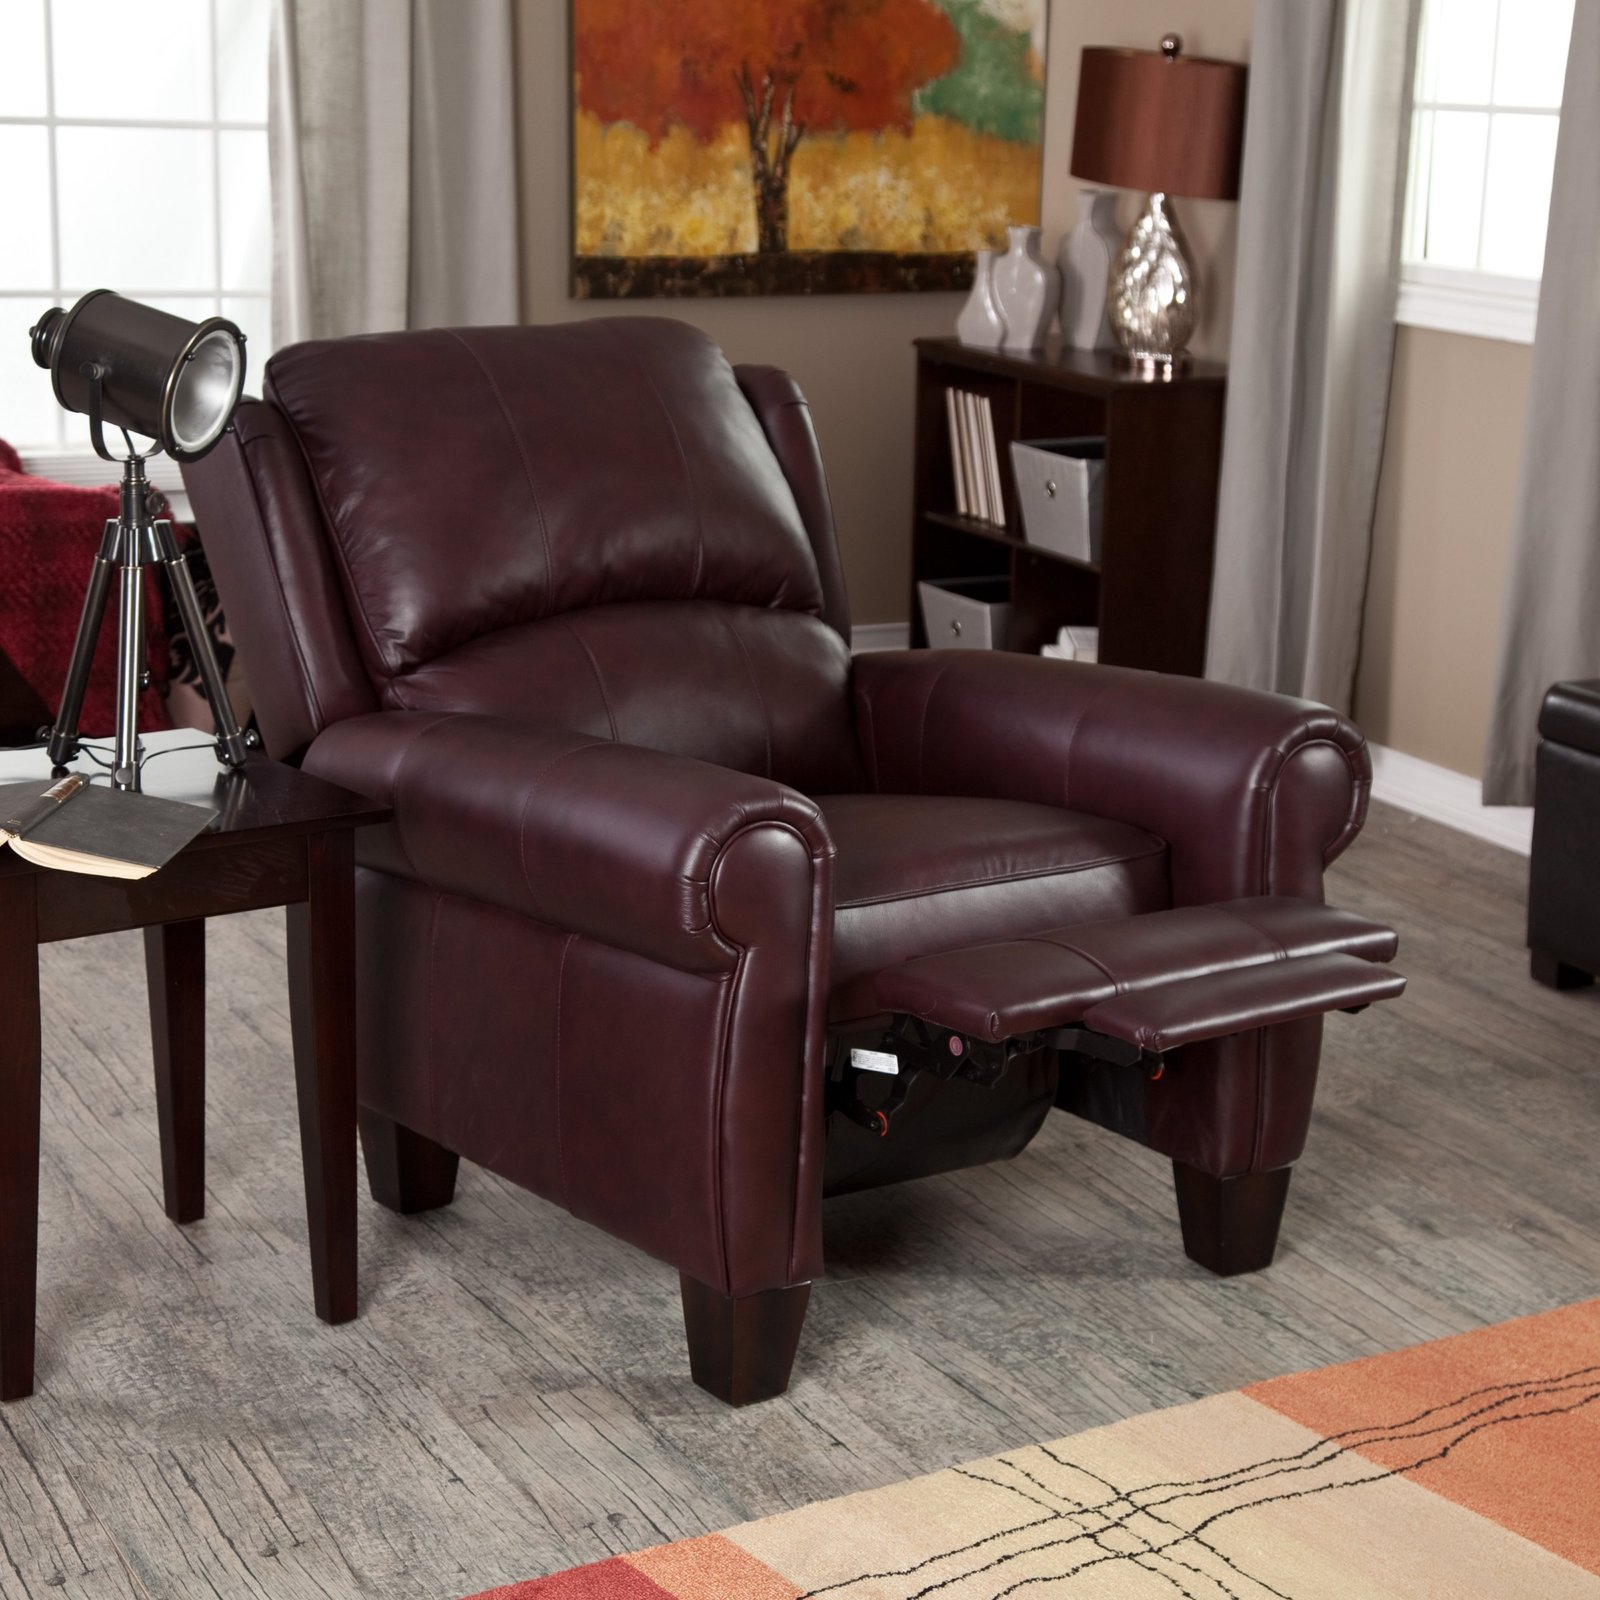 Leather Living Room Chair Leather Recliner Chair Home Burgundy Push Back Wingback